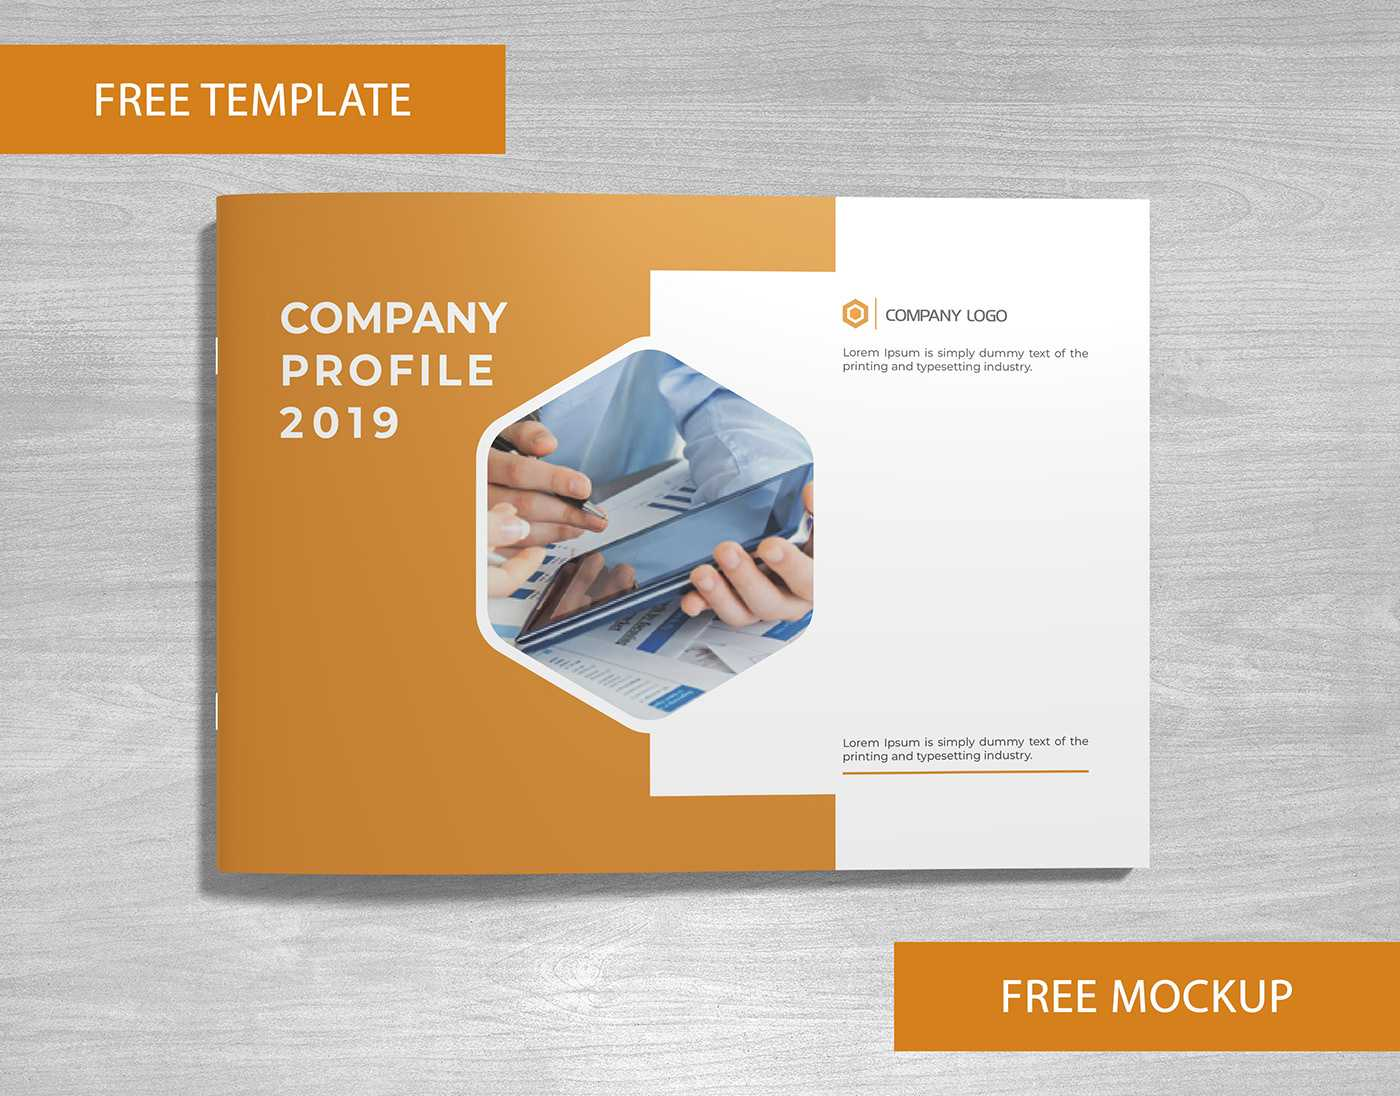 Company Profile Free Template And Mockup Download On Behance Throughout Free Business Profile Template Download